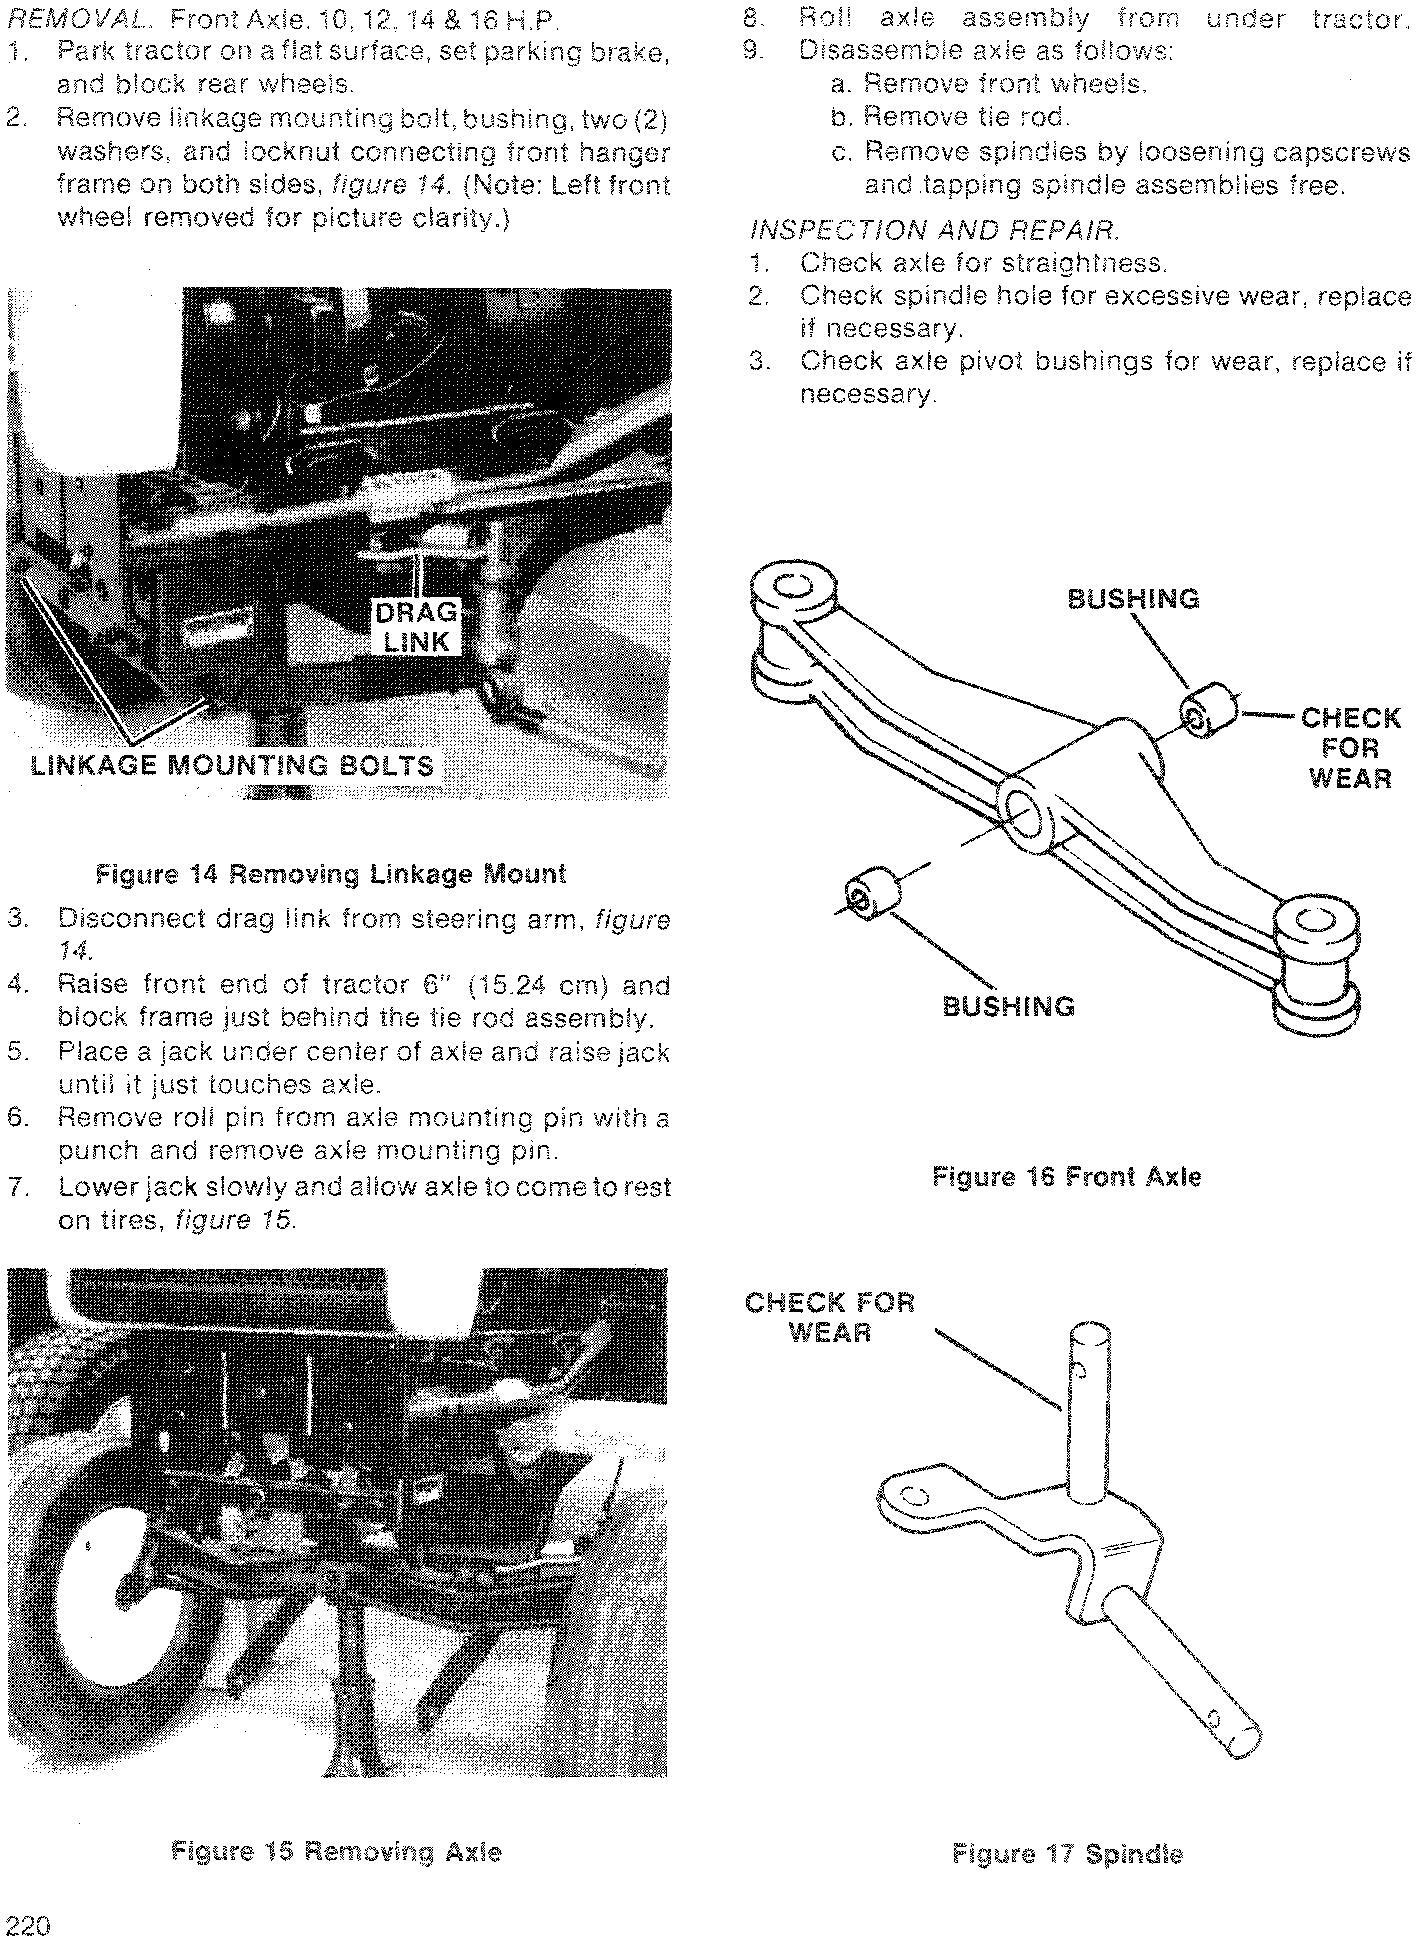 Ford 100, 120, 125, 145, 165, 195 Lawn & Garden Tractor Service Manual - 3